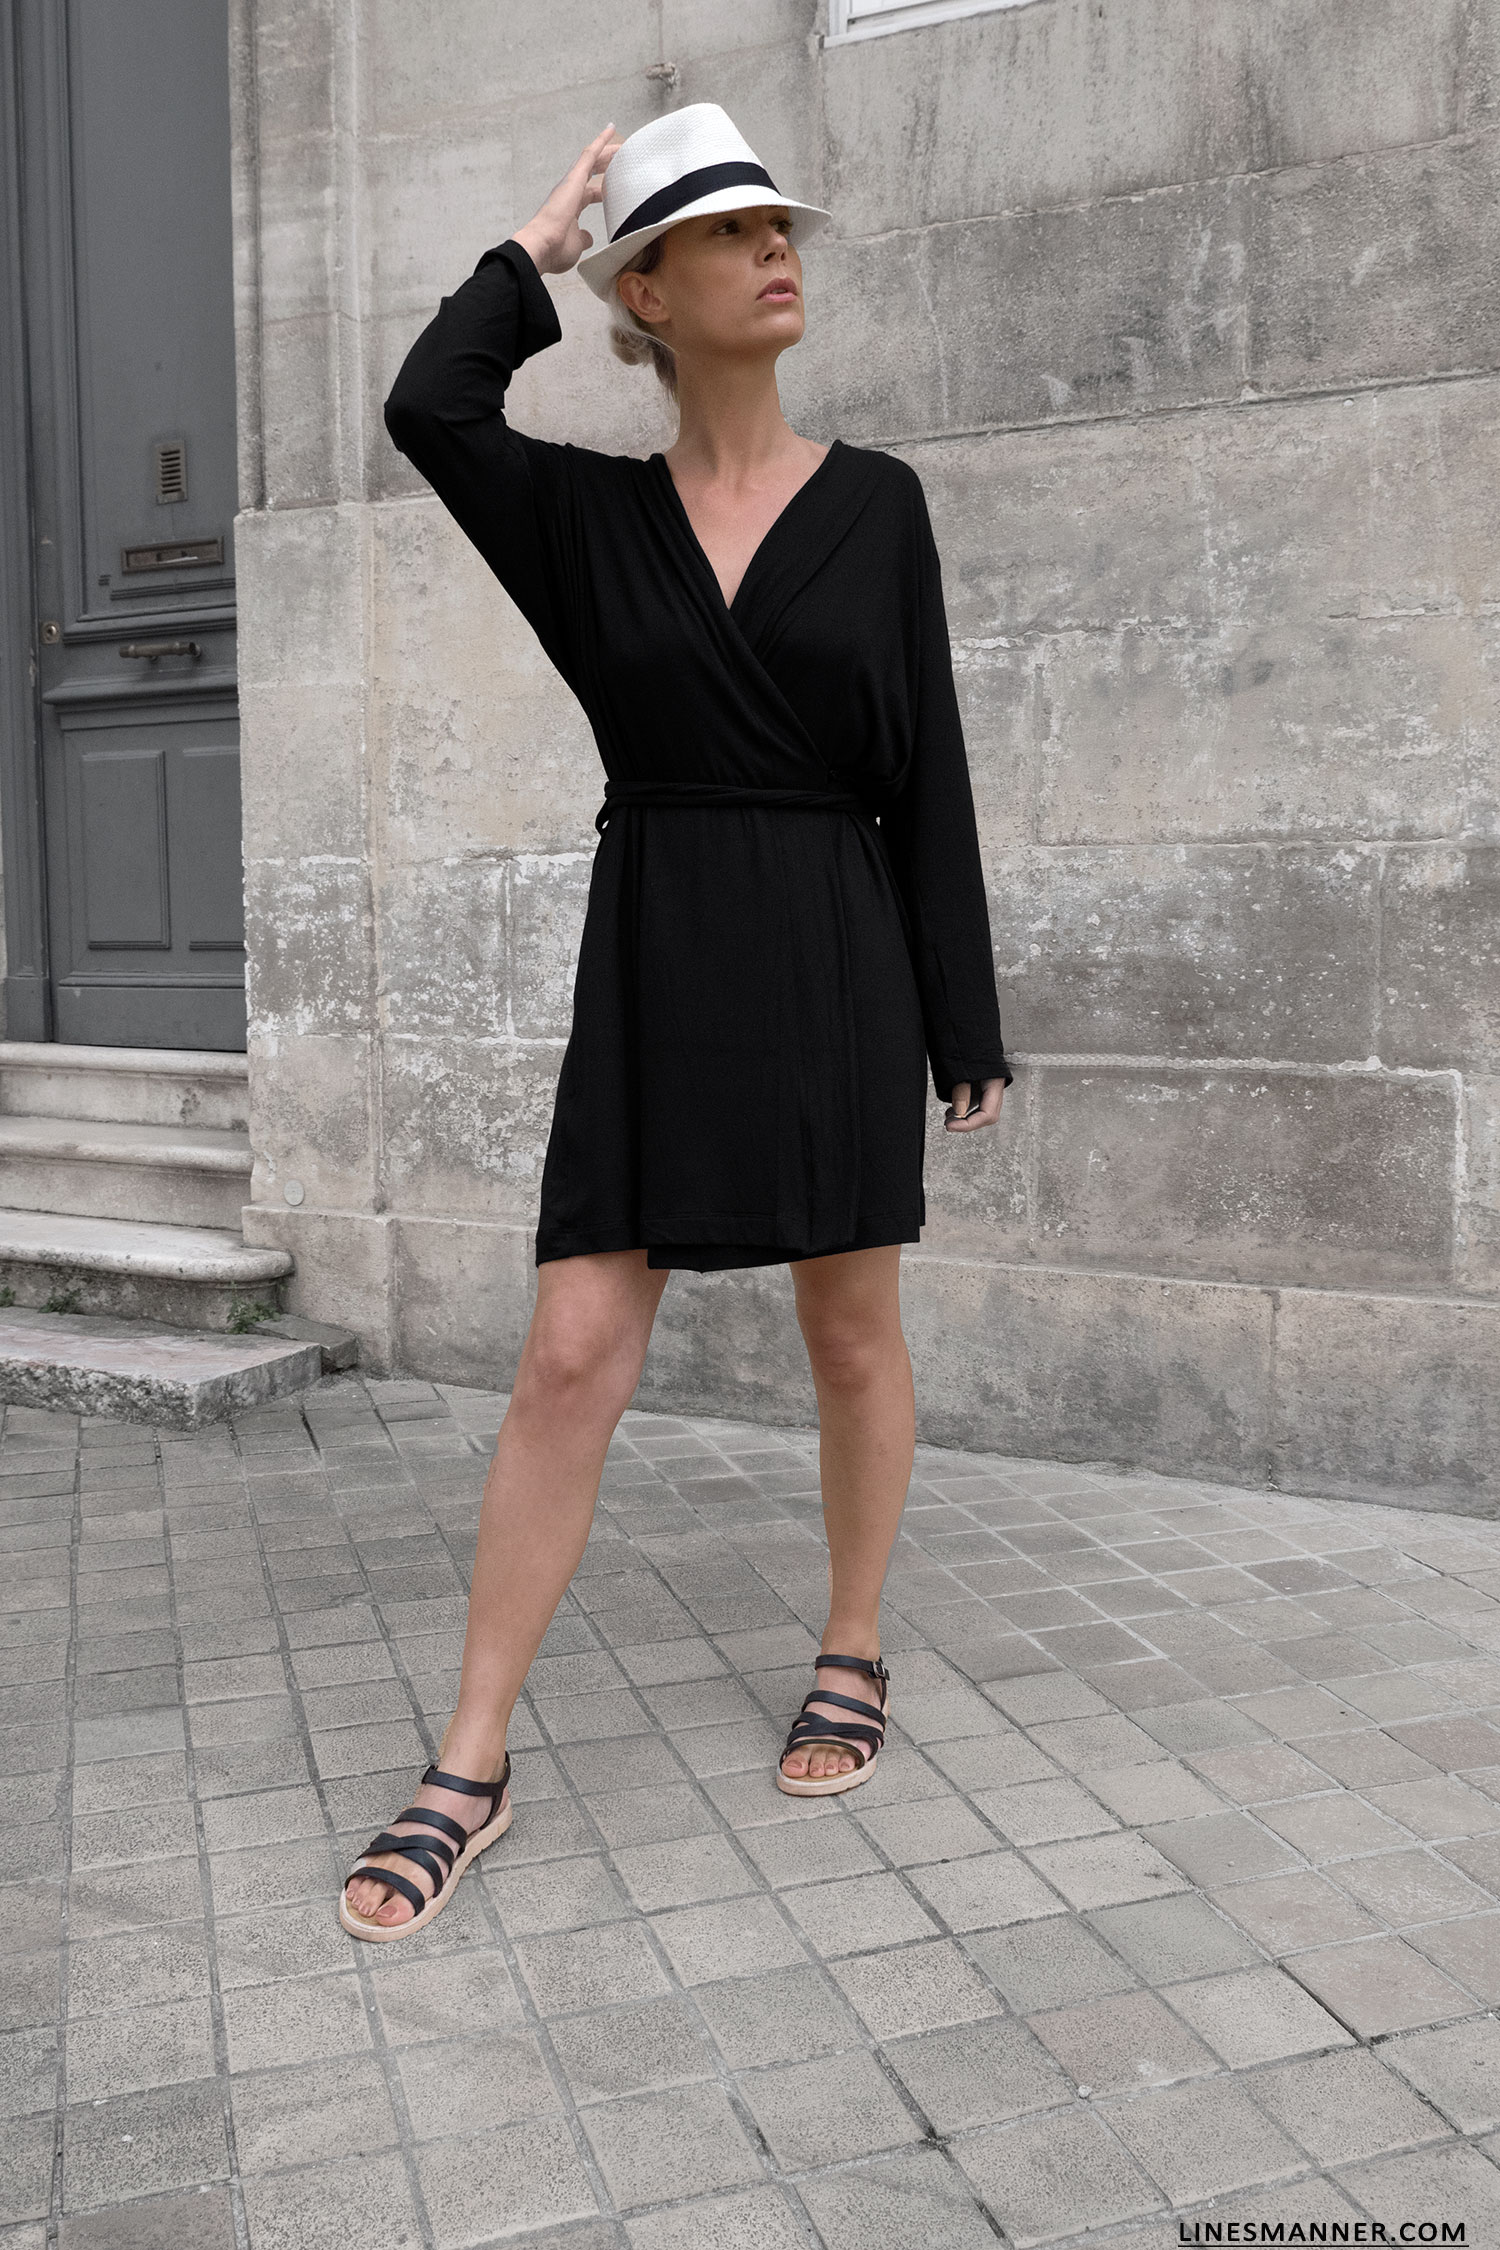 32d06908cf07 Lines-Manner-Woron-Sustainable-Eco Fashion-Vegan-Timeless-Softness-Little Black Dress-Wrapped Dress-Frecnh Riviera- Outfit-Minimal-Summer-Panama-7